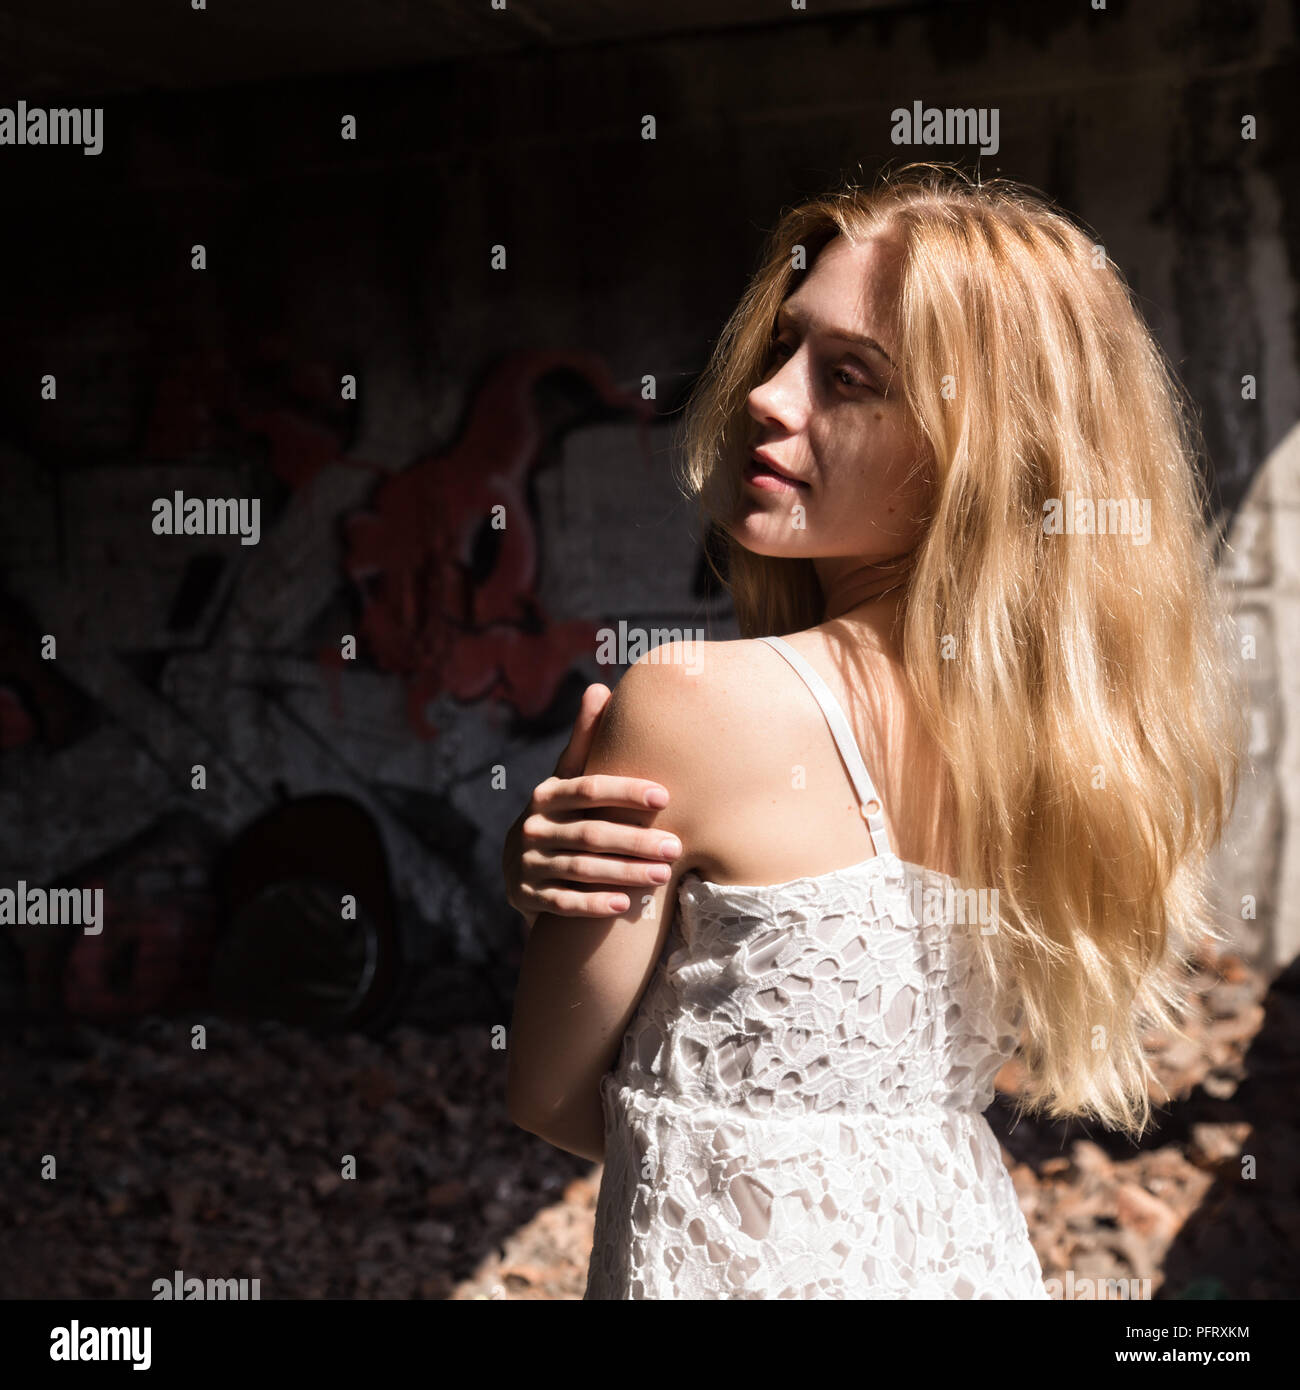 lonely blondy woman in a whit translucent blouse in abandoned building - Stock Image